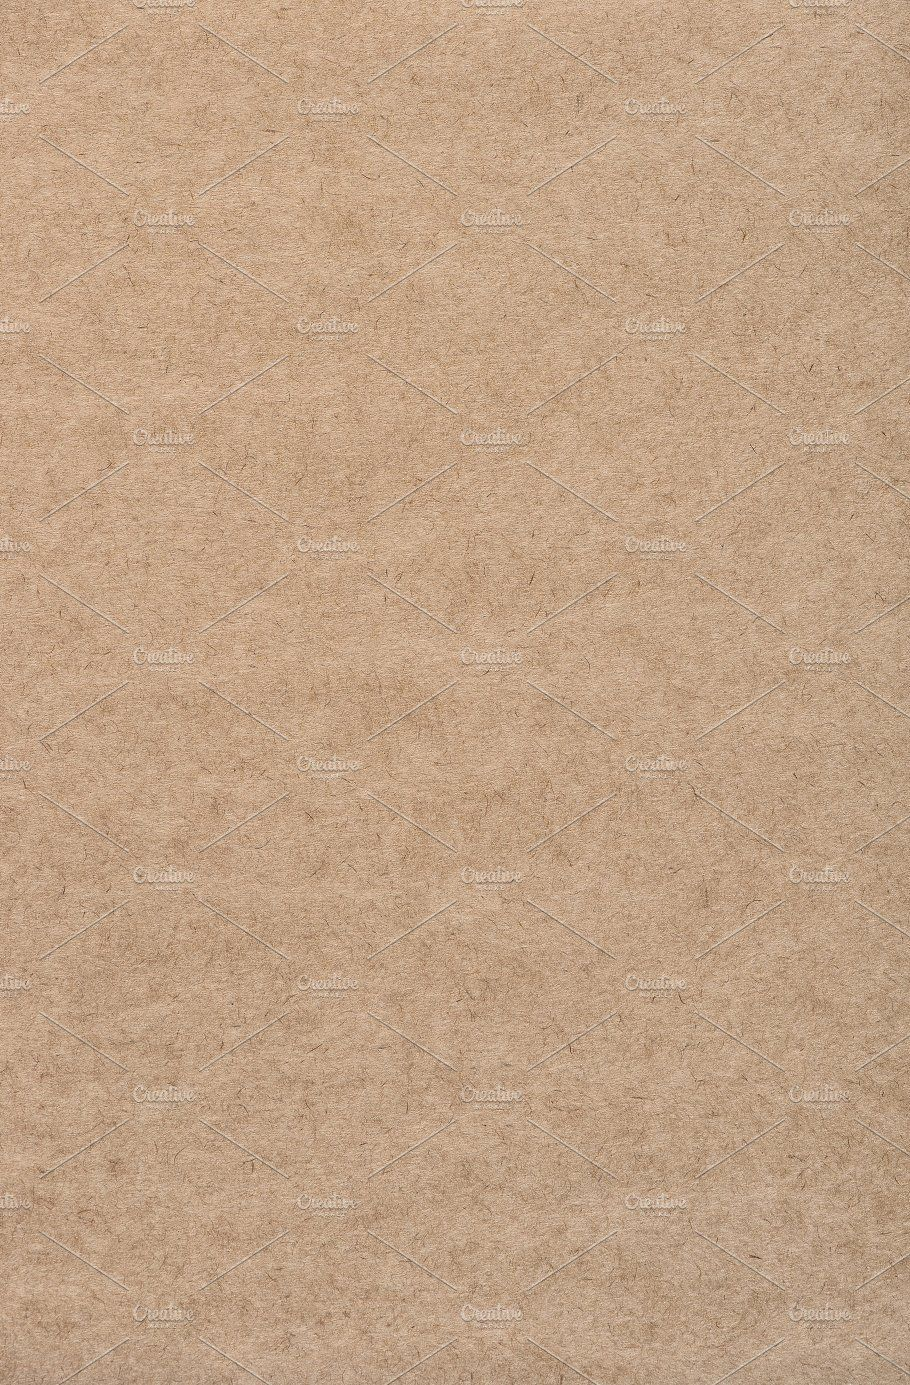 Recycled Craft Paper Texture Free Paper Texture Paper Texture Natural Paper Textures